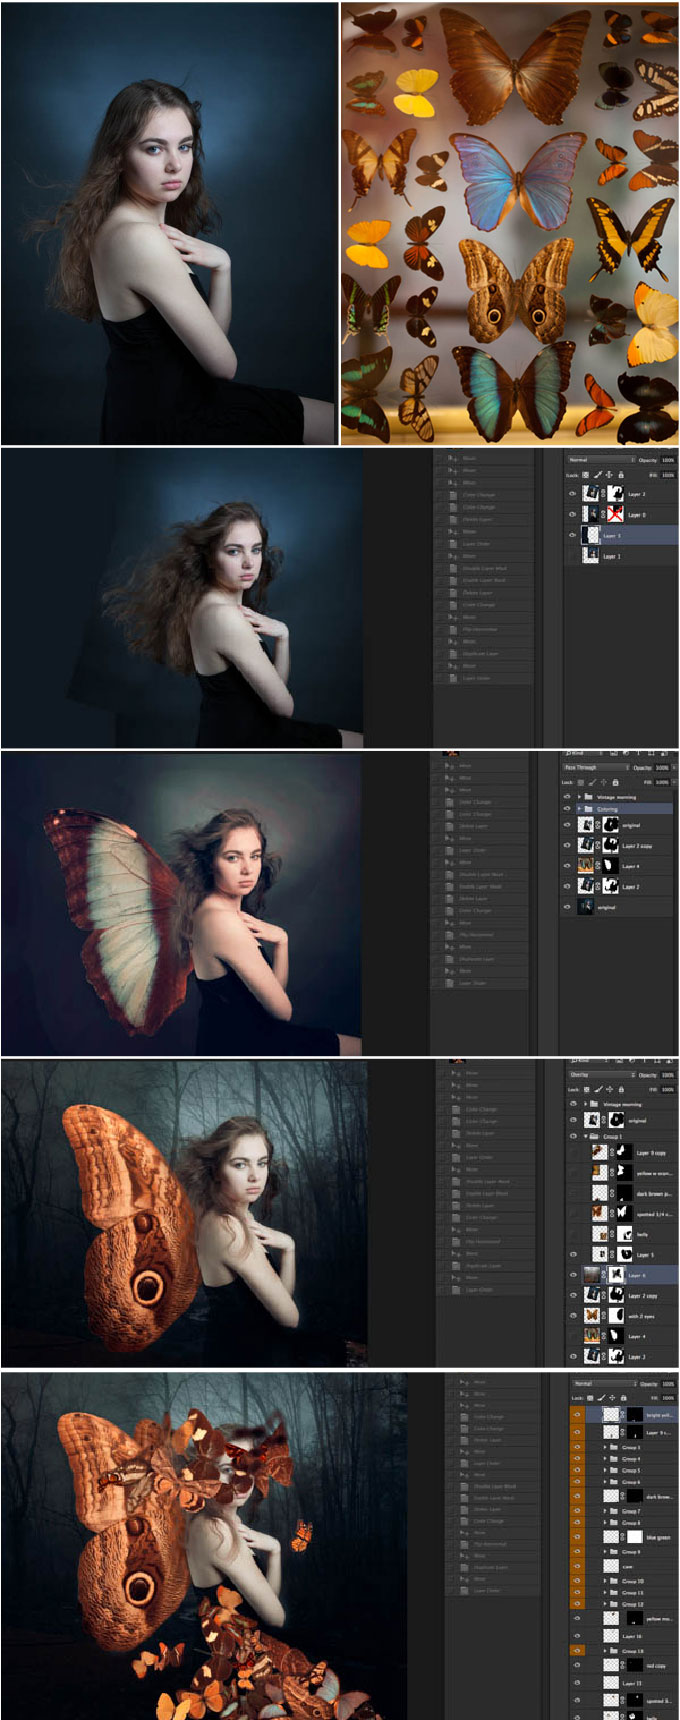 Rachel-with-Butterflies-stages